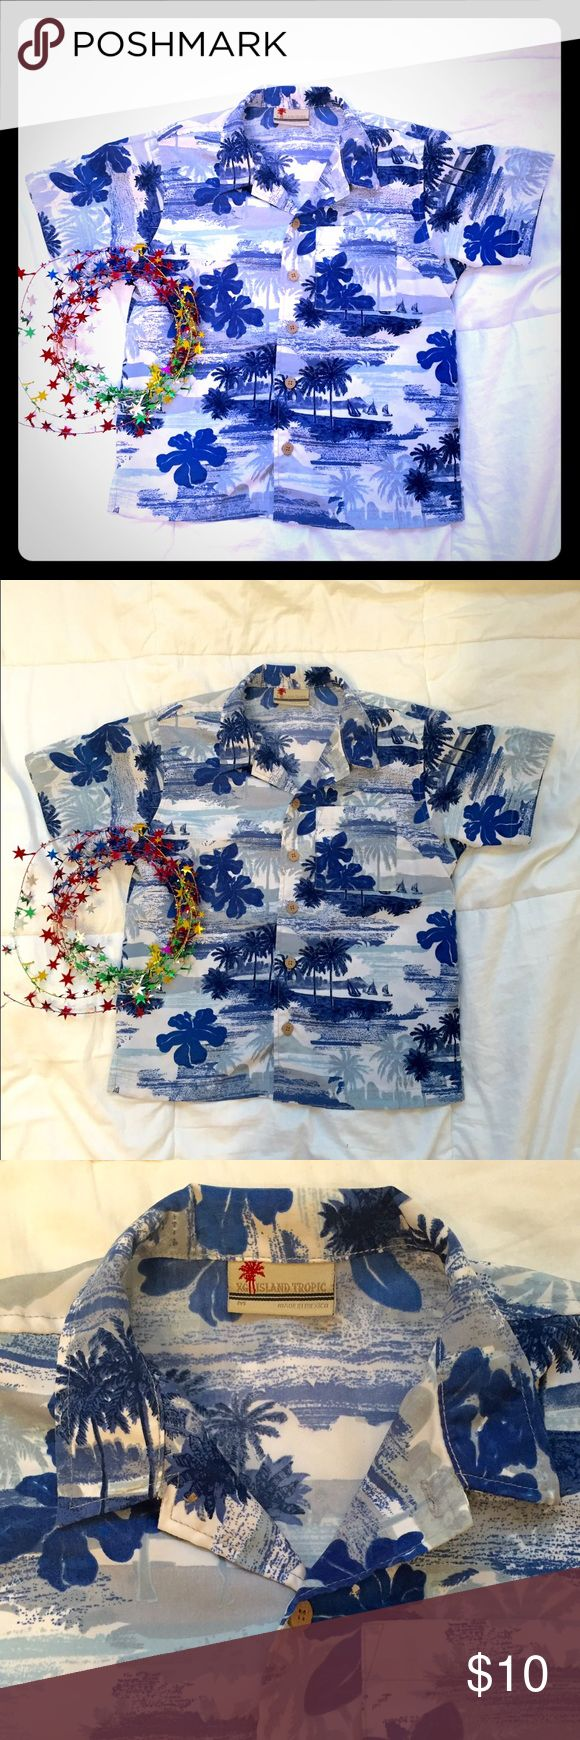 BOGO 50% off Boys Hawaiian Shirt Super cute Boys Hawaiian Shirt   Size Medium. I believe its a size 6/7. This is based on when my son wore it.  Great fir Hawaiian themed parties or a fun dress shirt.  Collared button down shirt. Shirts & Tops Button Down Shirts